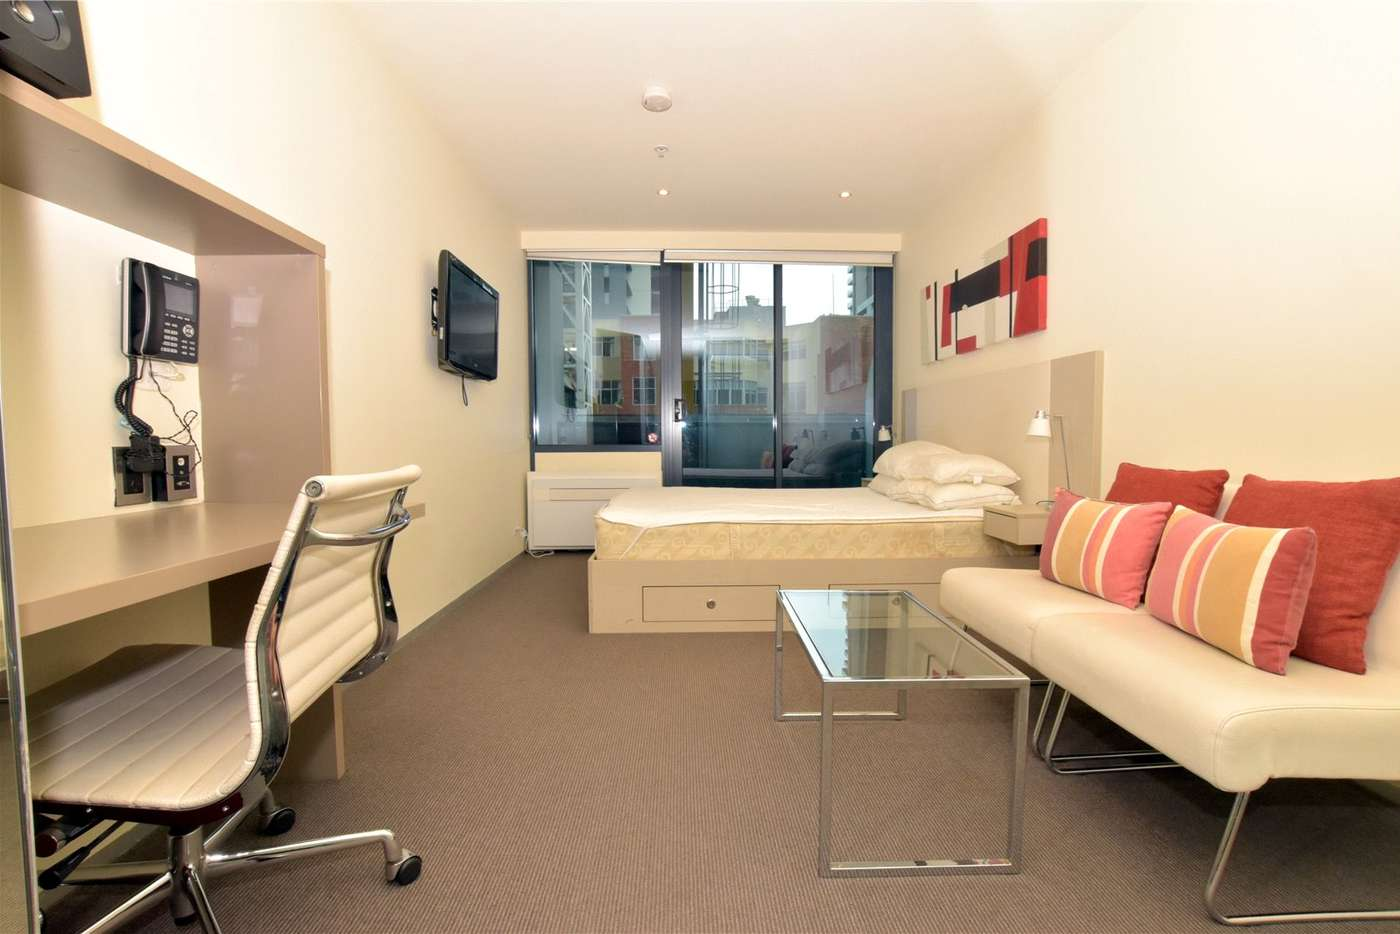 Main view of Homely studio listing, 410/181 ABeckett Street, Melbourne VIC 3000